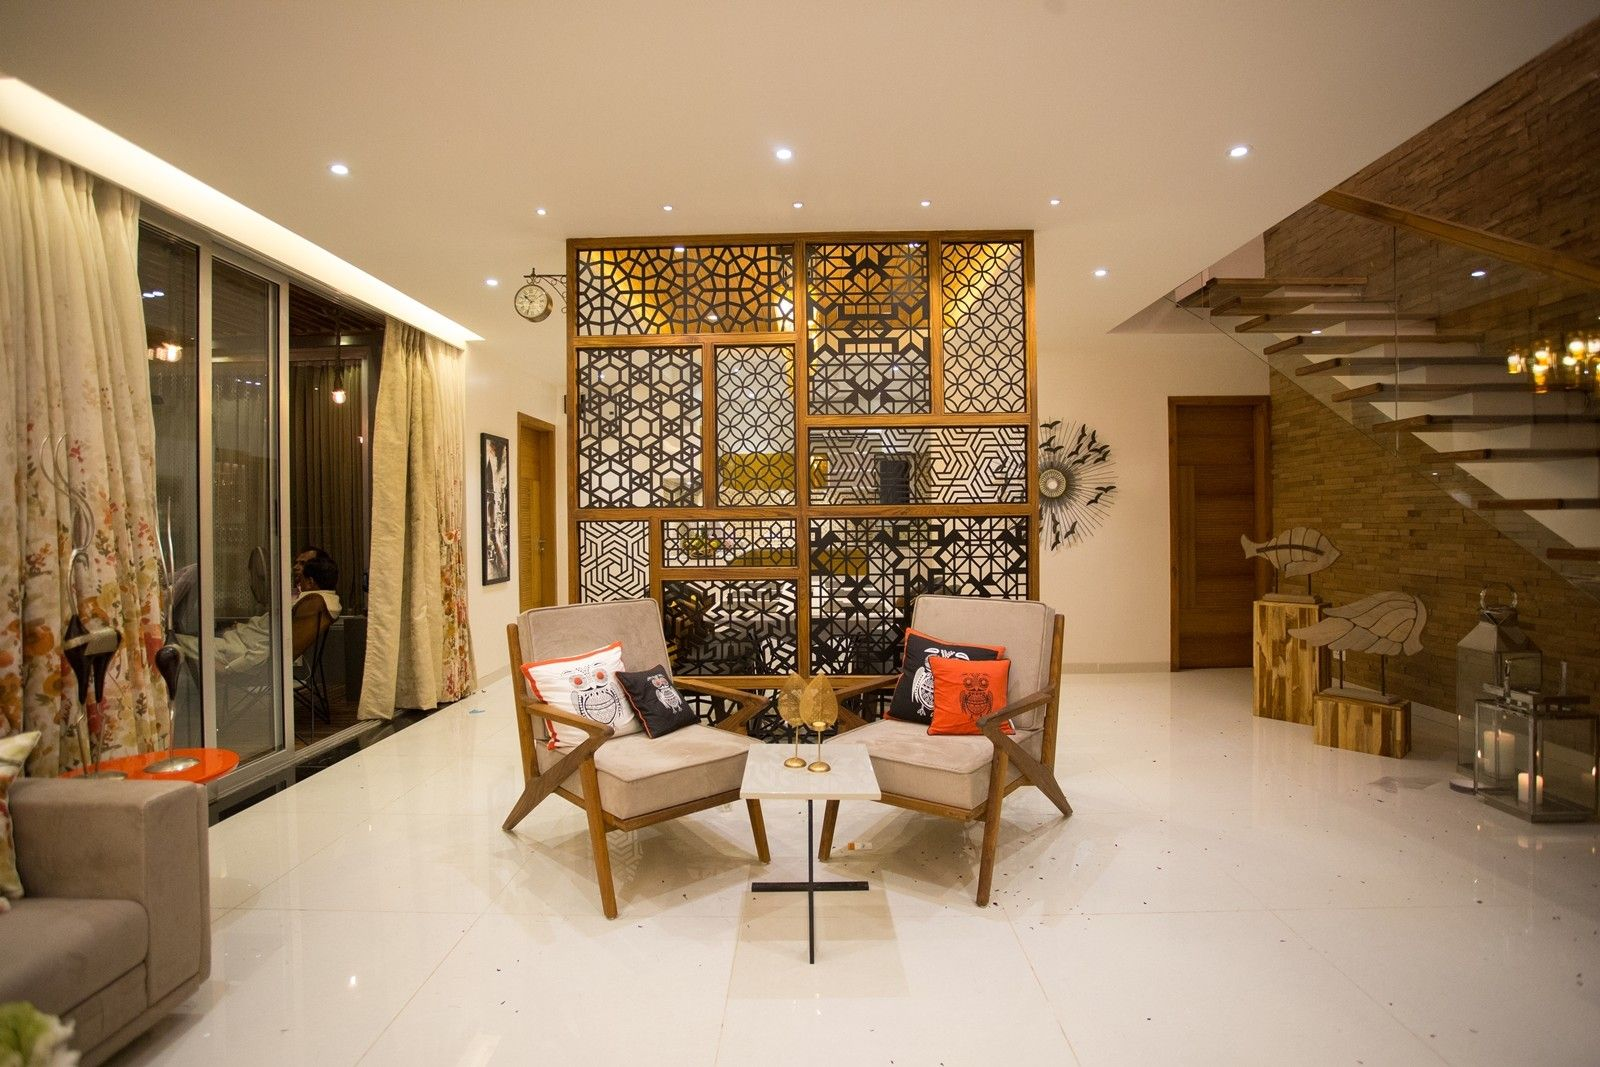 Wide Living Room Furnished With Wooden Chairs With Spongy Gadi